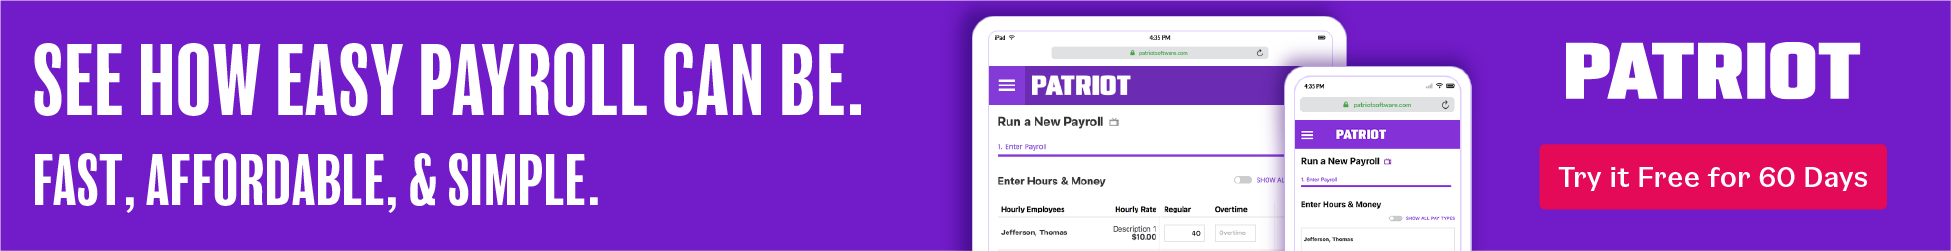 Patriot Affordable Payroll